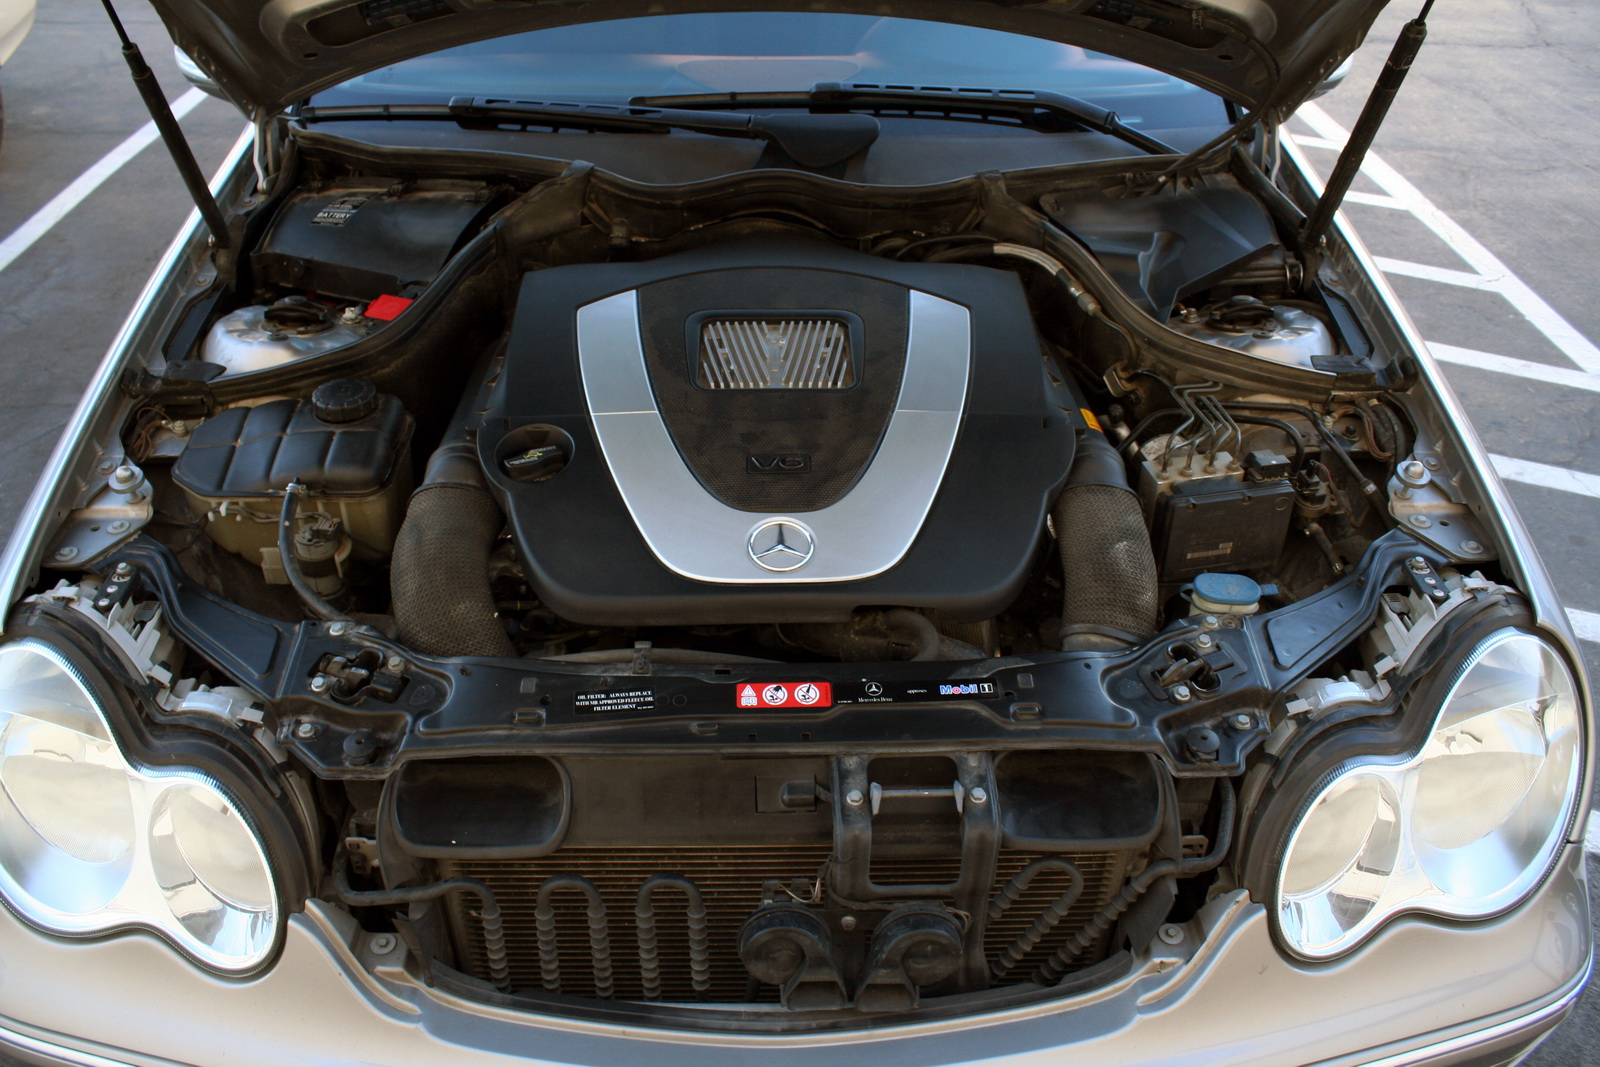 hight resolution of if it s a my2007 c230 it s a v6 your engine under the hood should look like this